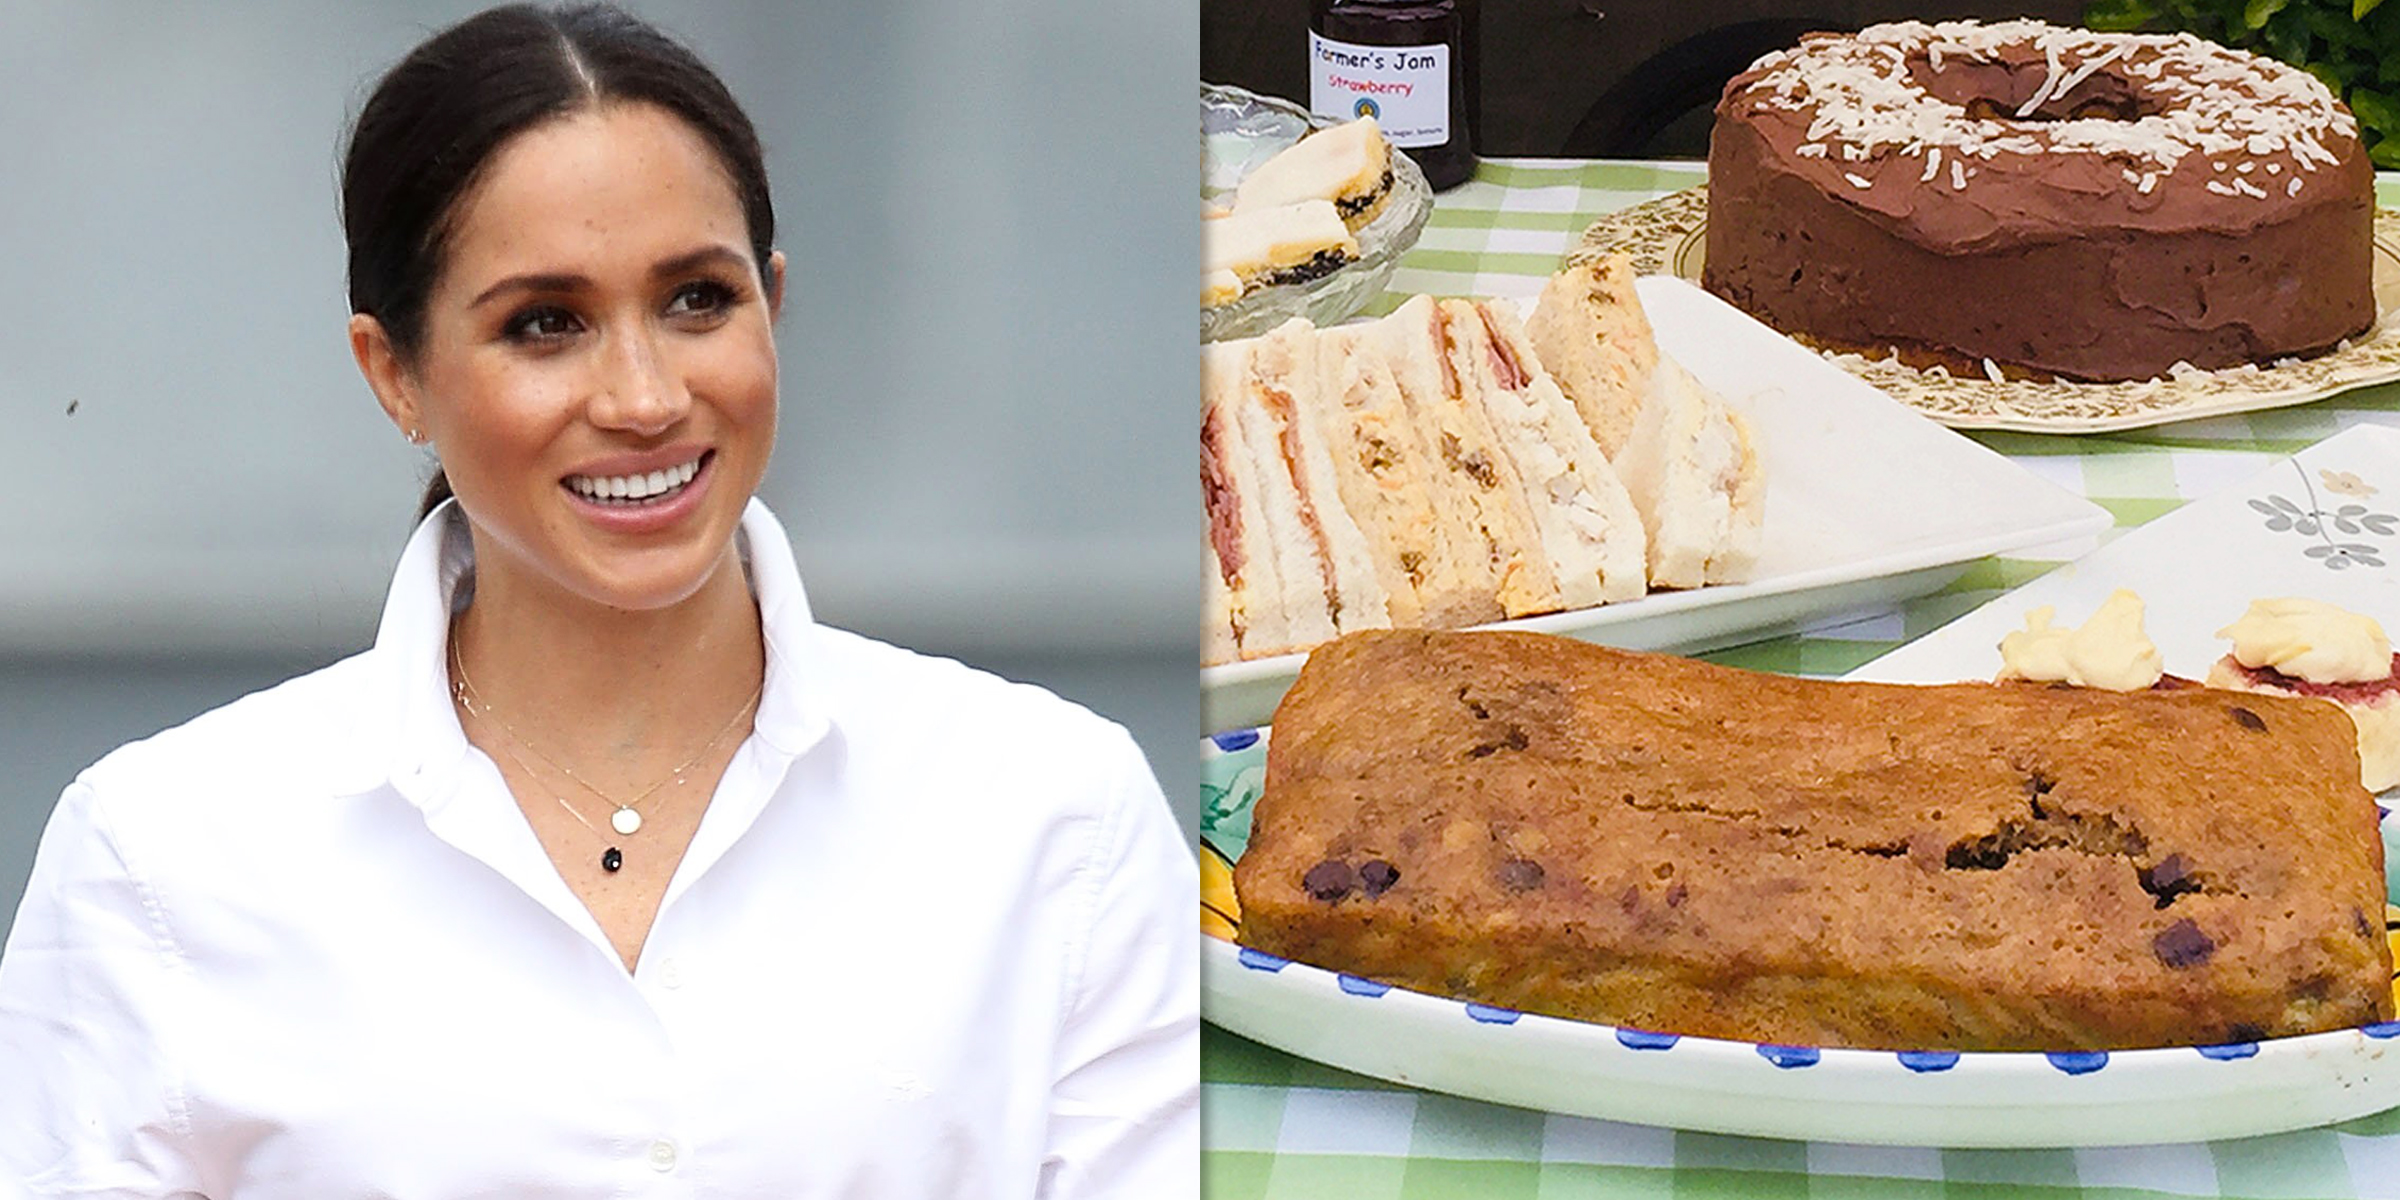 Meghan Markle Baked Banana Bread on the Royal Tour Because Theres Nothing She Cant Do